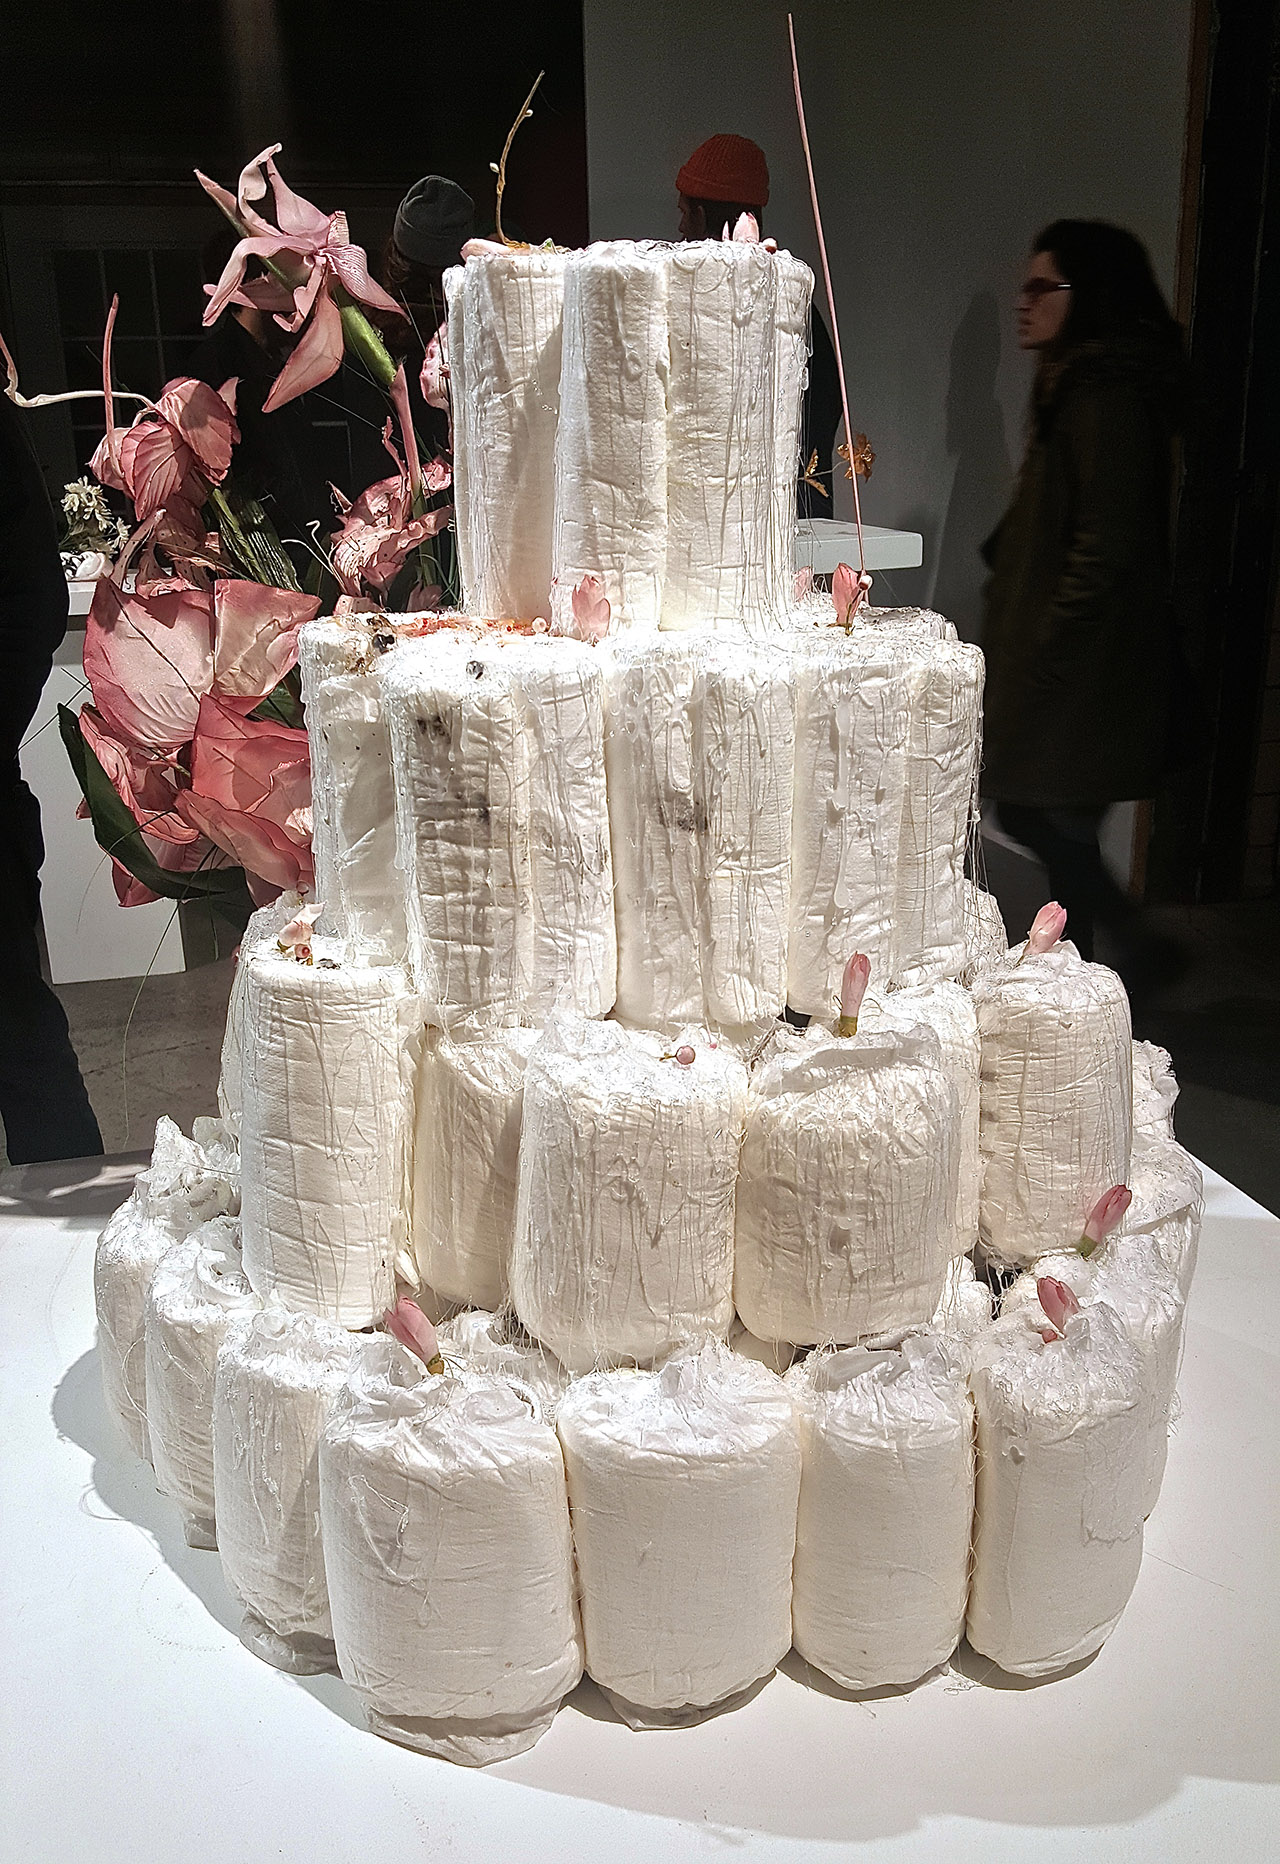 """""""Diaper Cake"""" (2015), diapers, hot glue, candies, glitter, dirt, fake flowers (click to enlarge)"""